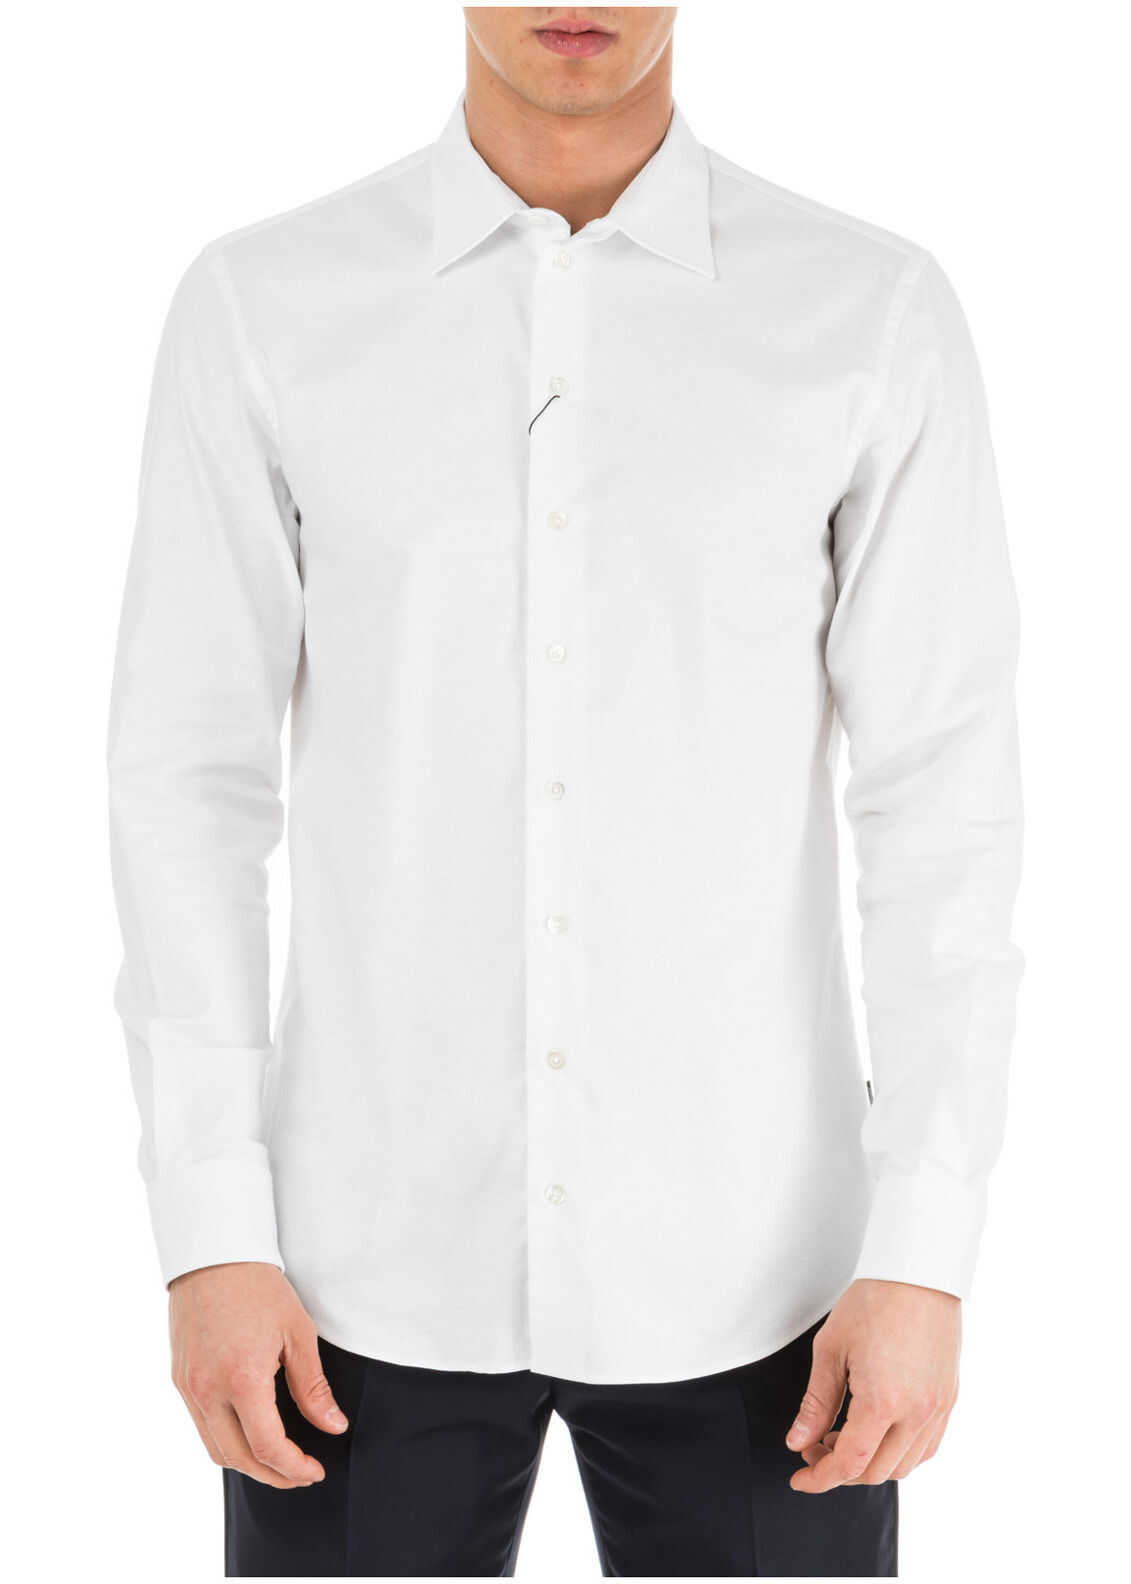 Emporio Armani Dress Shirt White